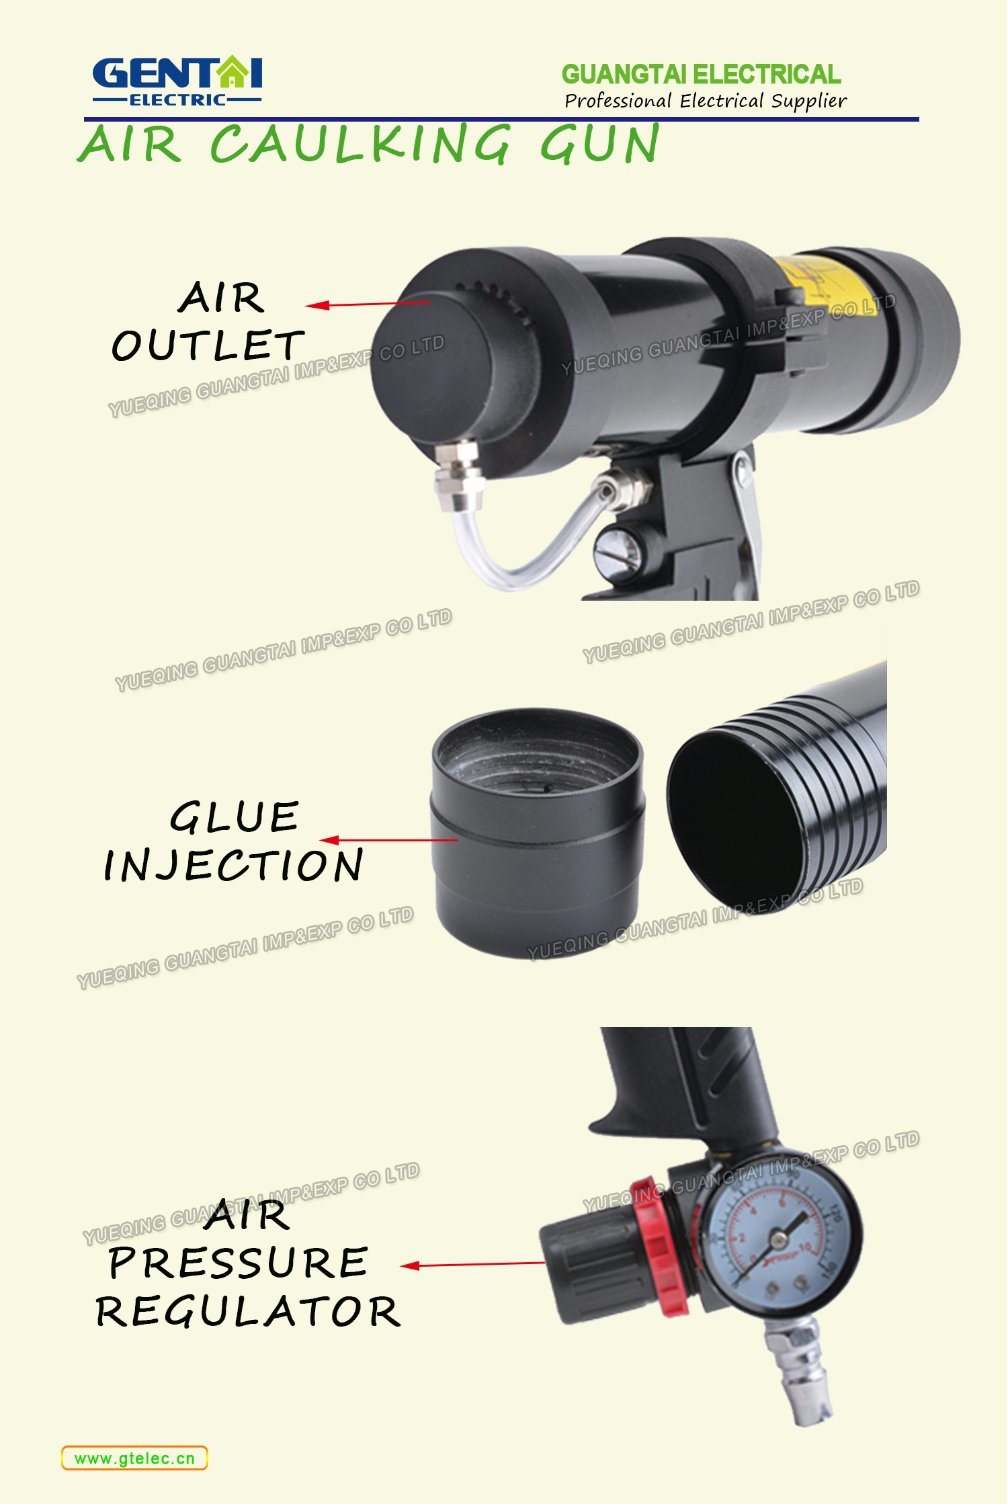 Pneumatic Tool Air Caulking Glue Gun with Gauge